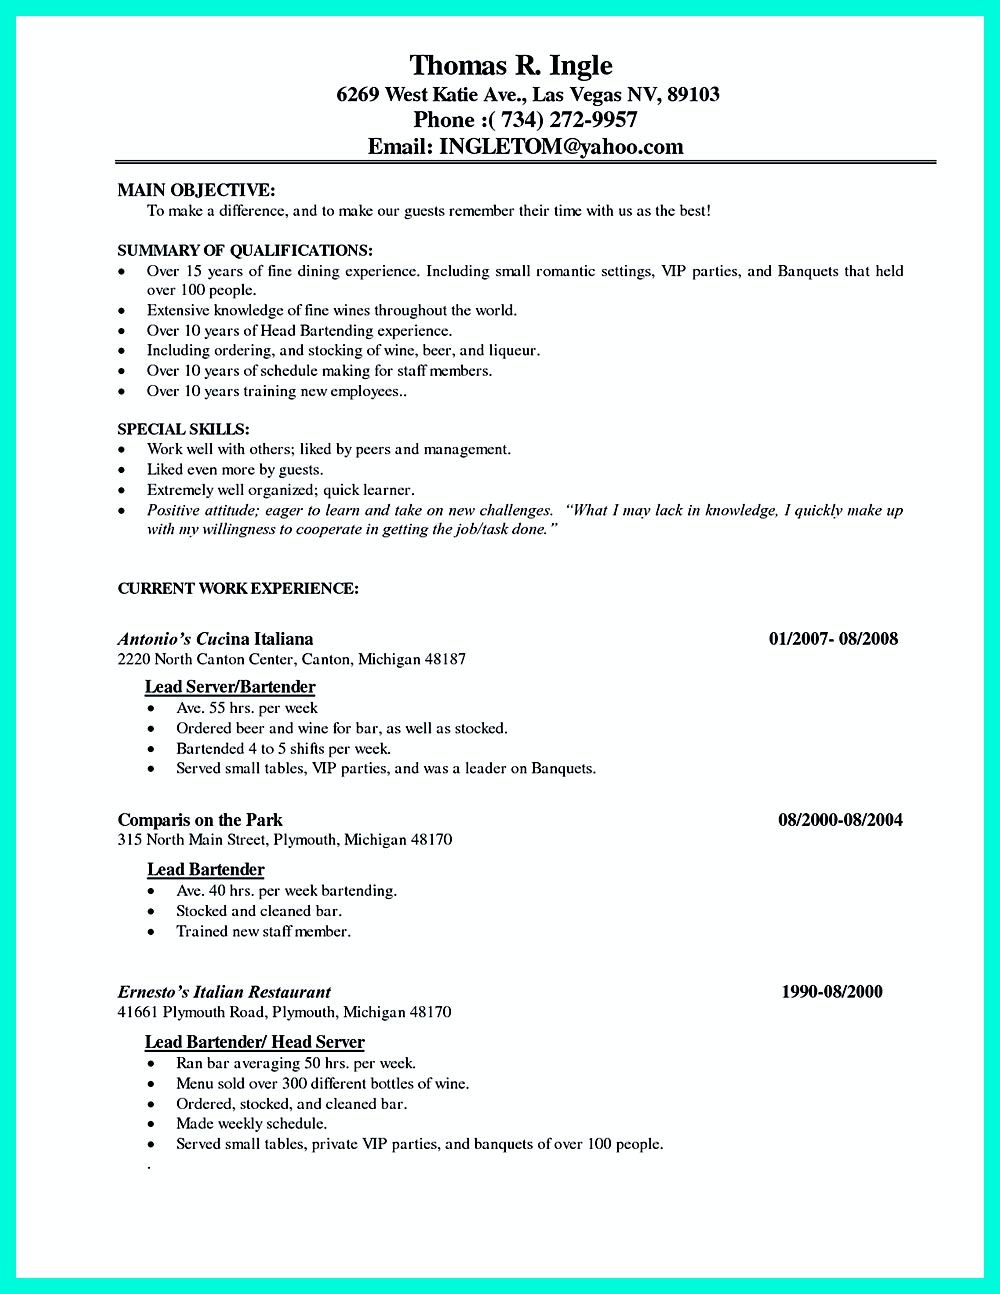 in convincing the caf or restaurant you must write your ability in waitress ability cocktail waitress resume samples and cocktail server resume examples